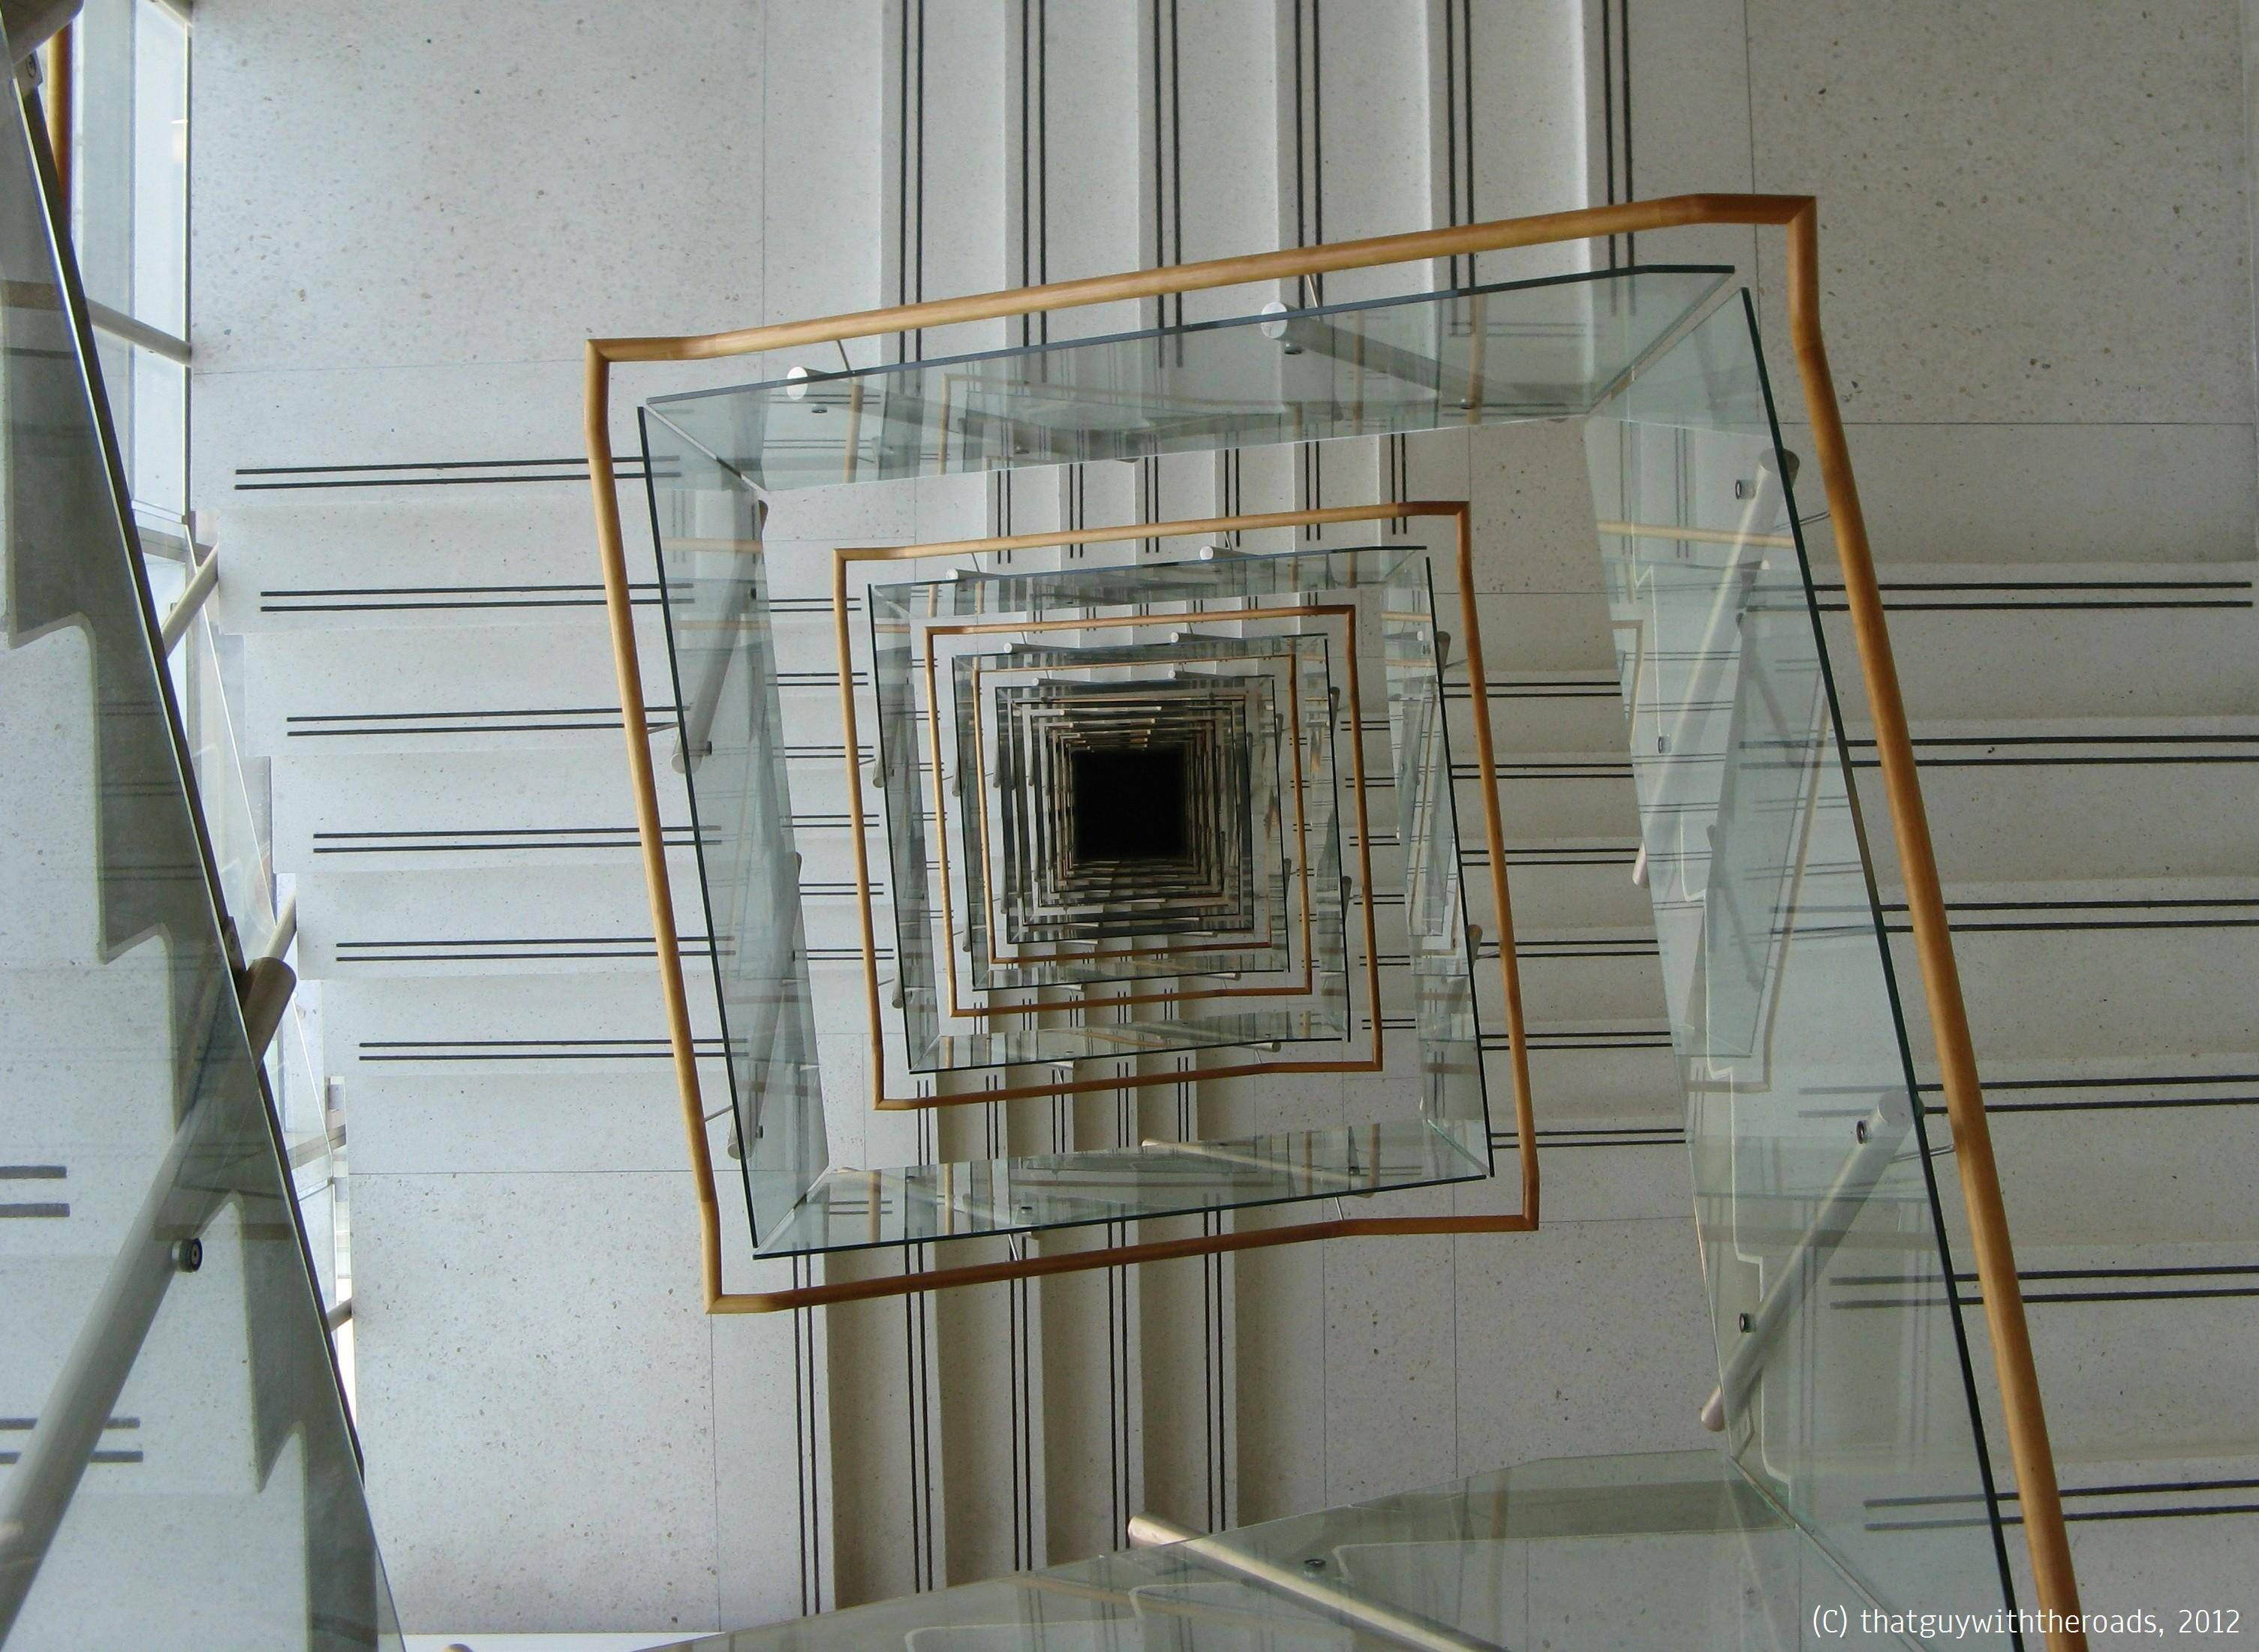 Dazzling square spiral staircase with clear glass and also for Square spiral staircase plans hall